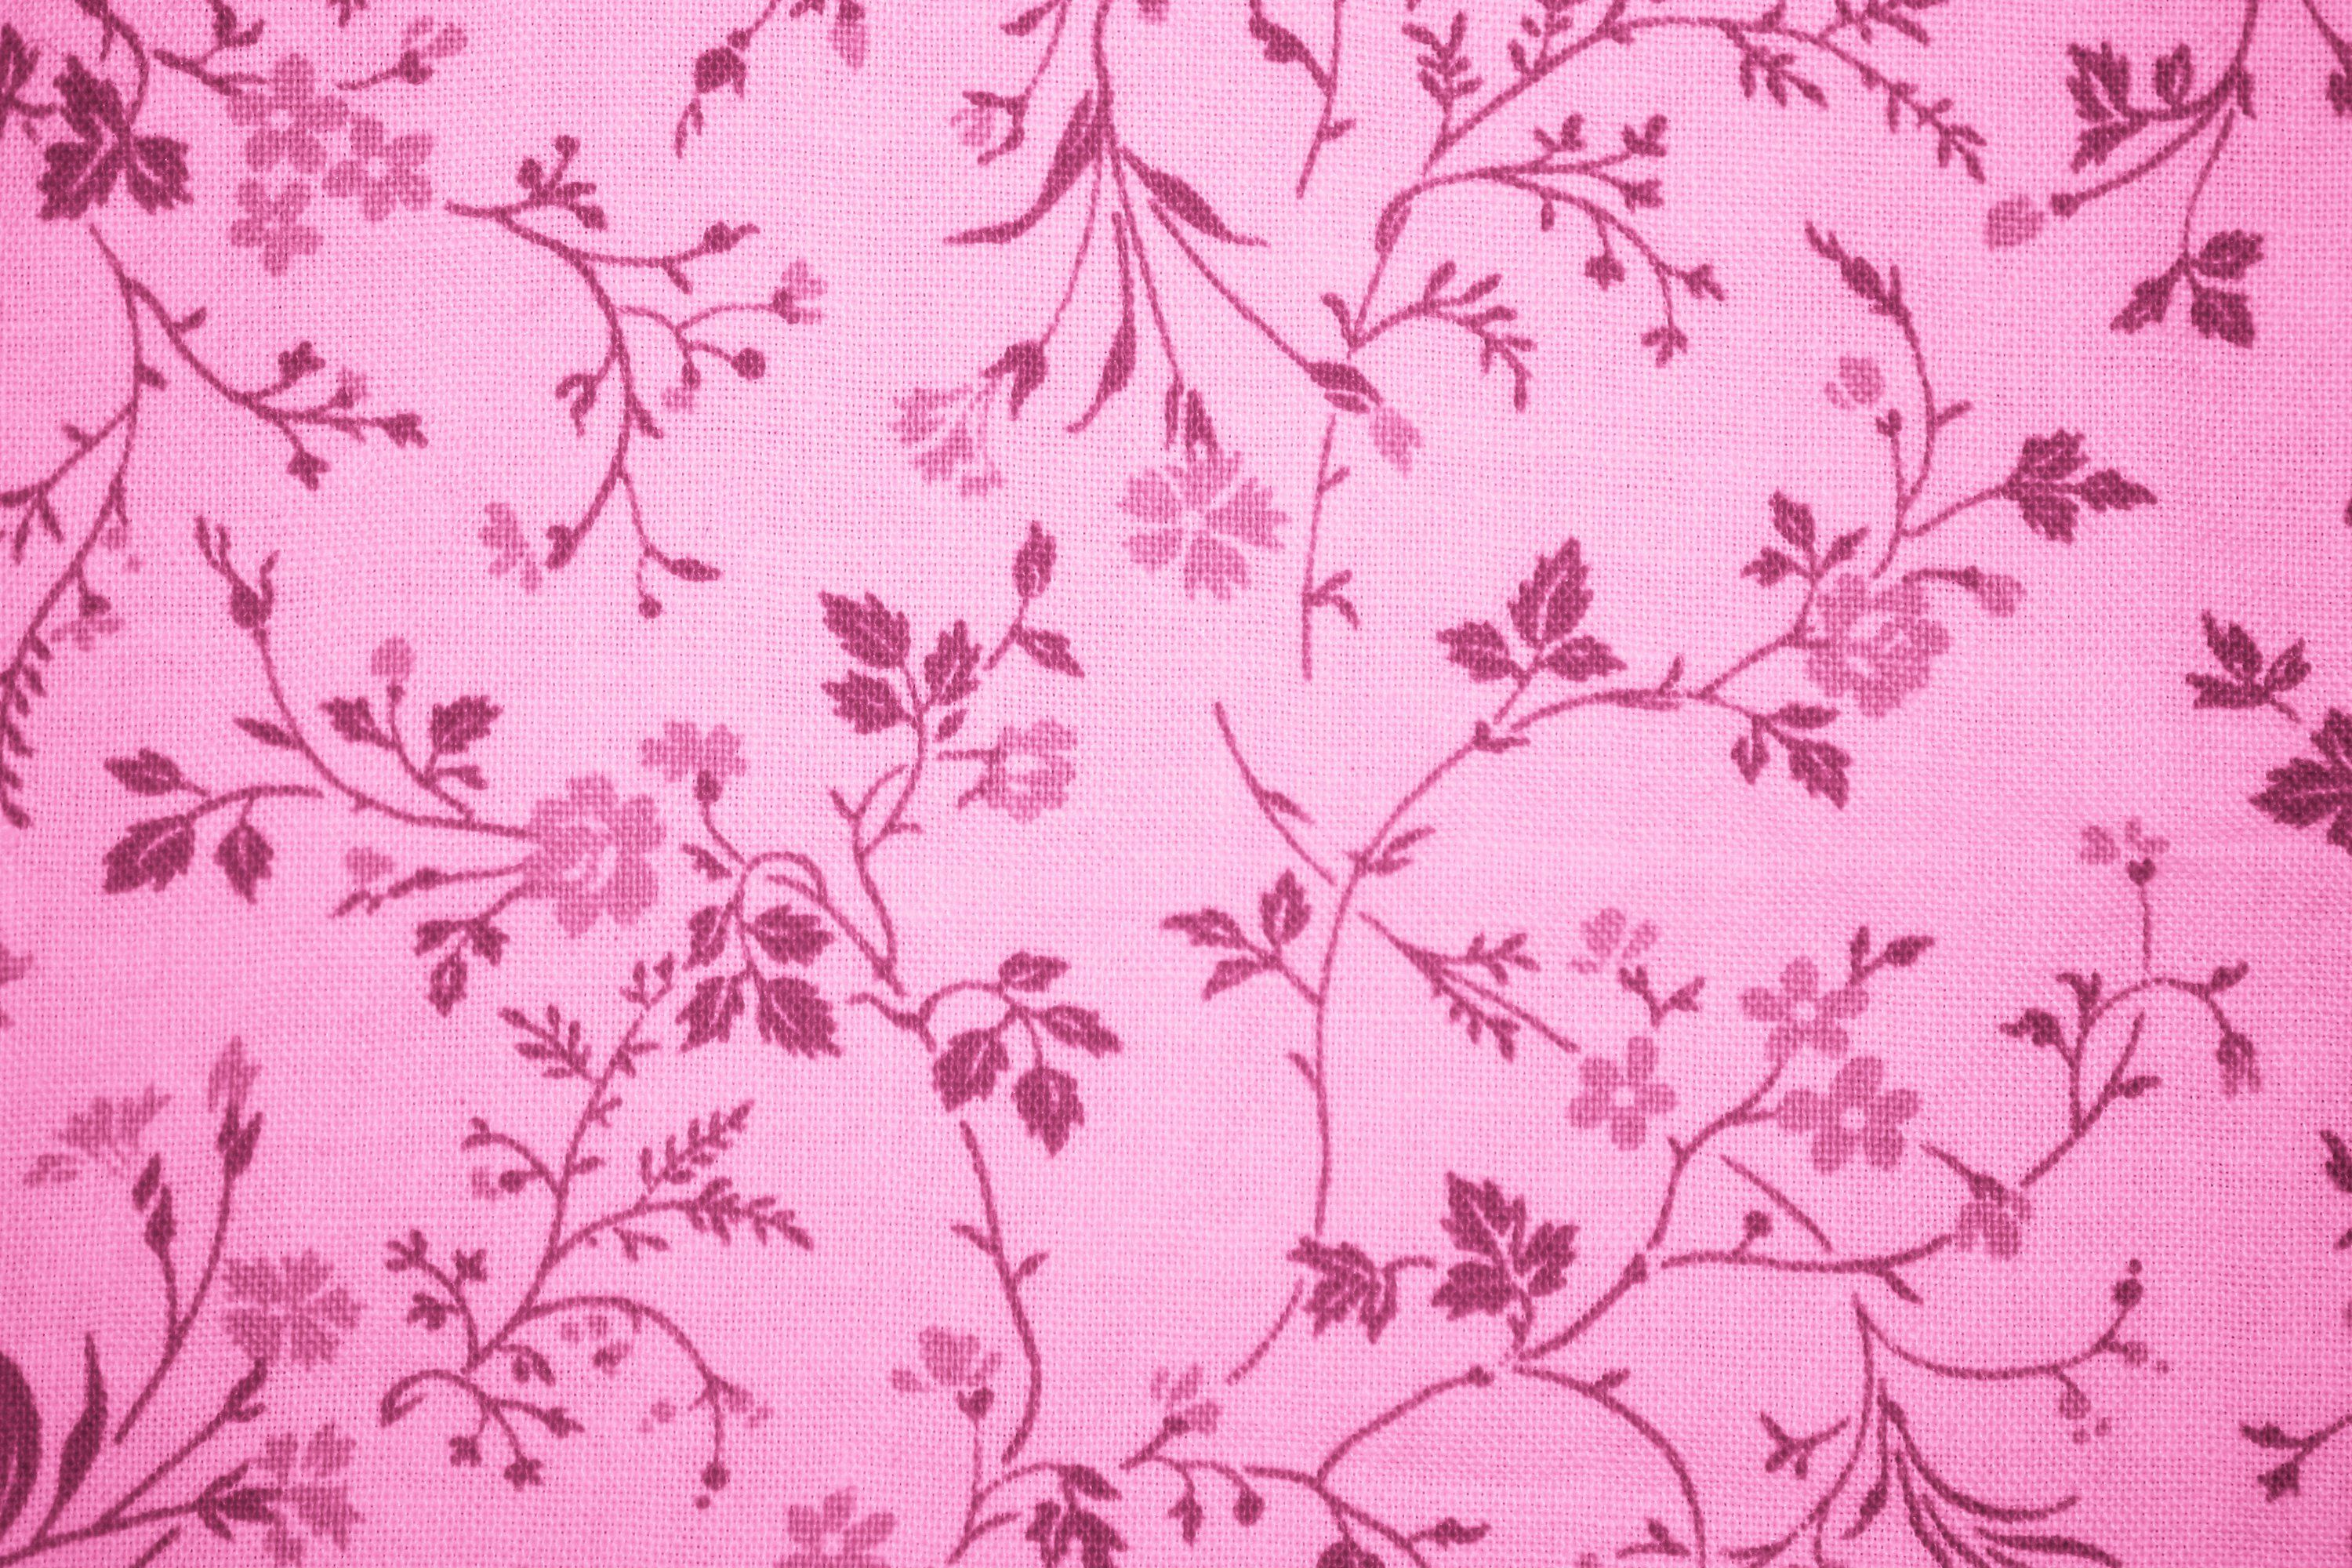 Pink Floral Print Fabric Texture Floral Print Fabric Printing